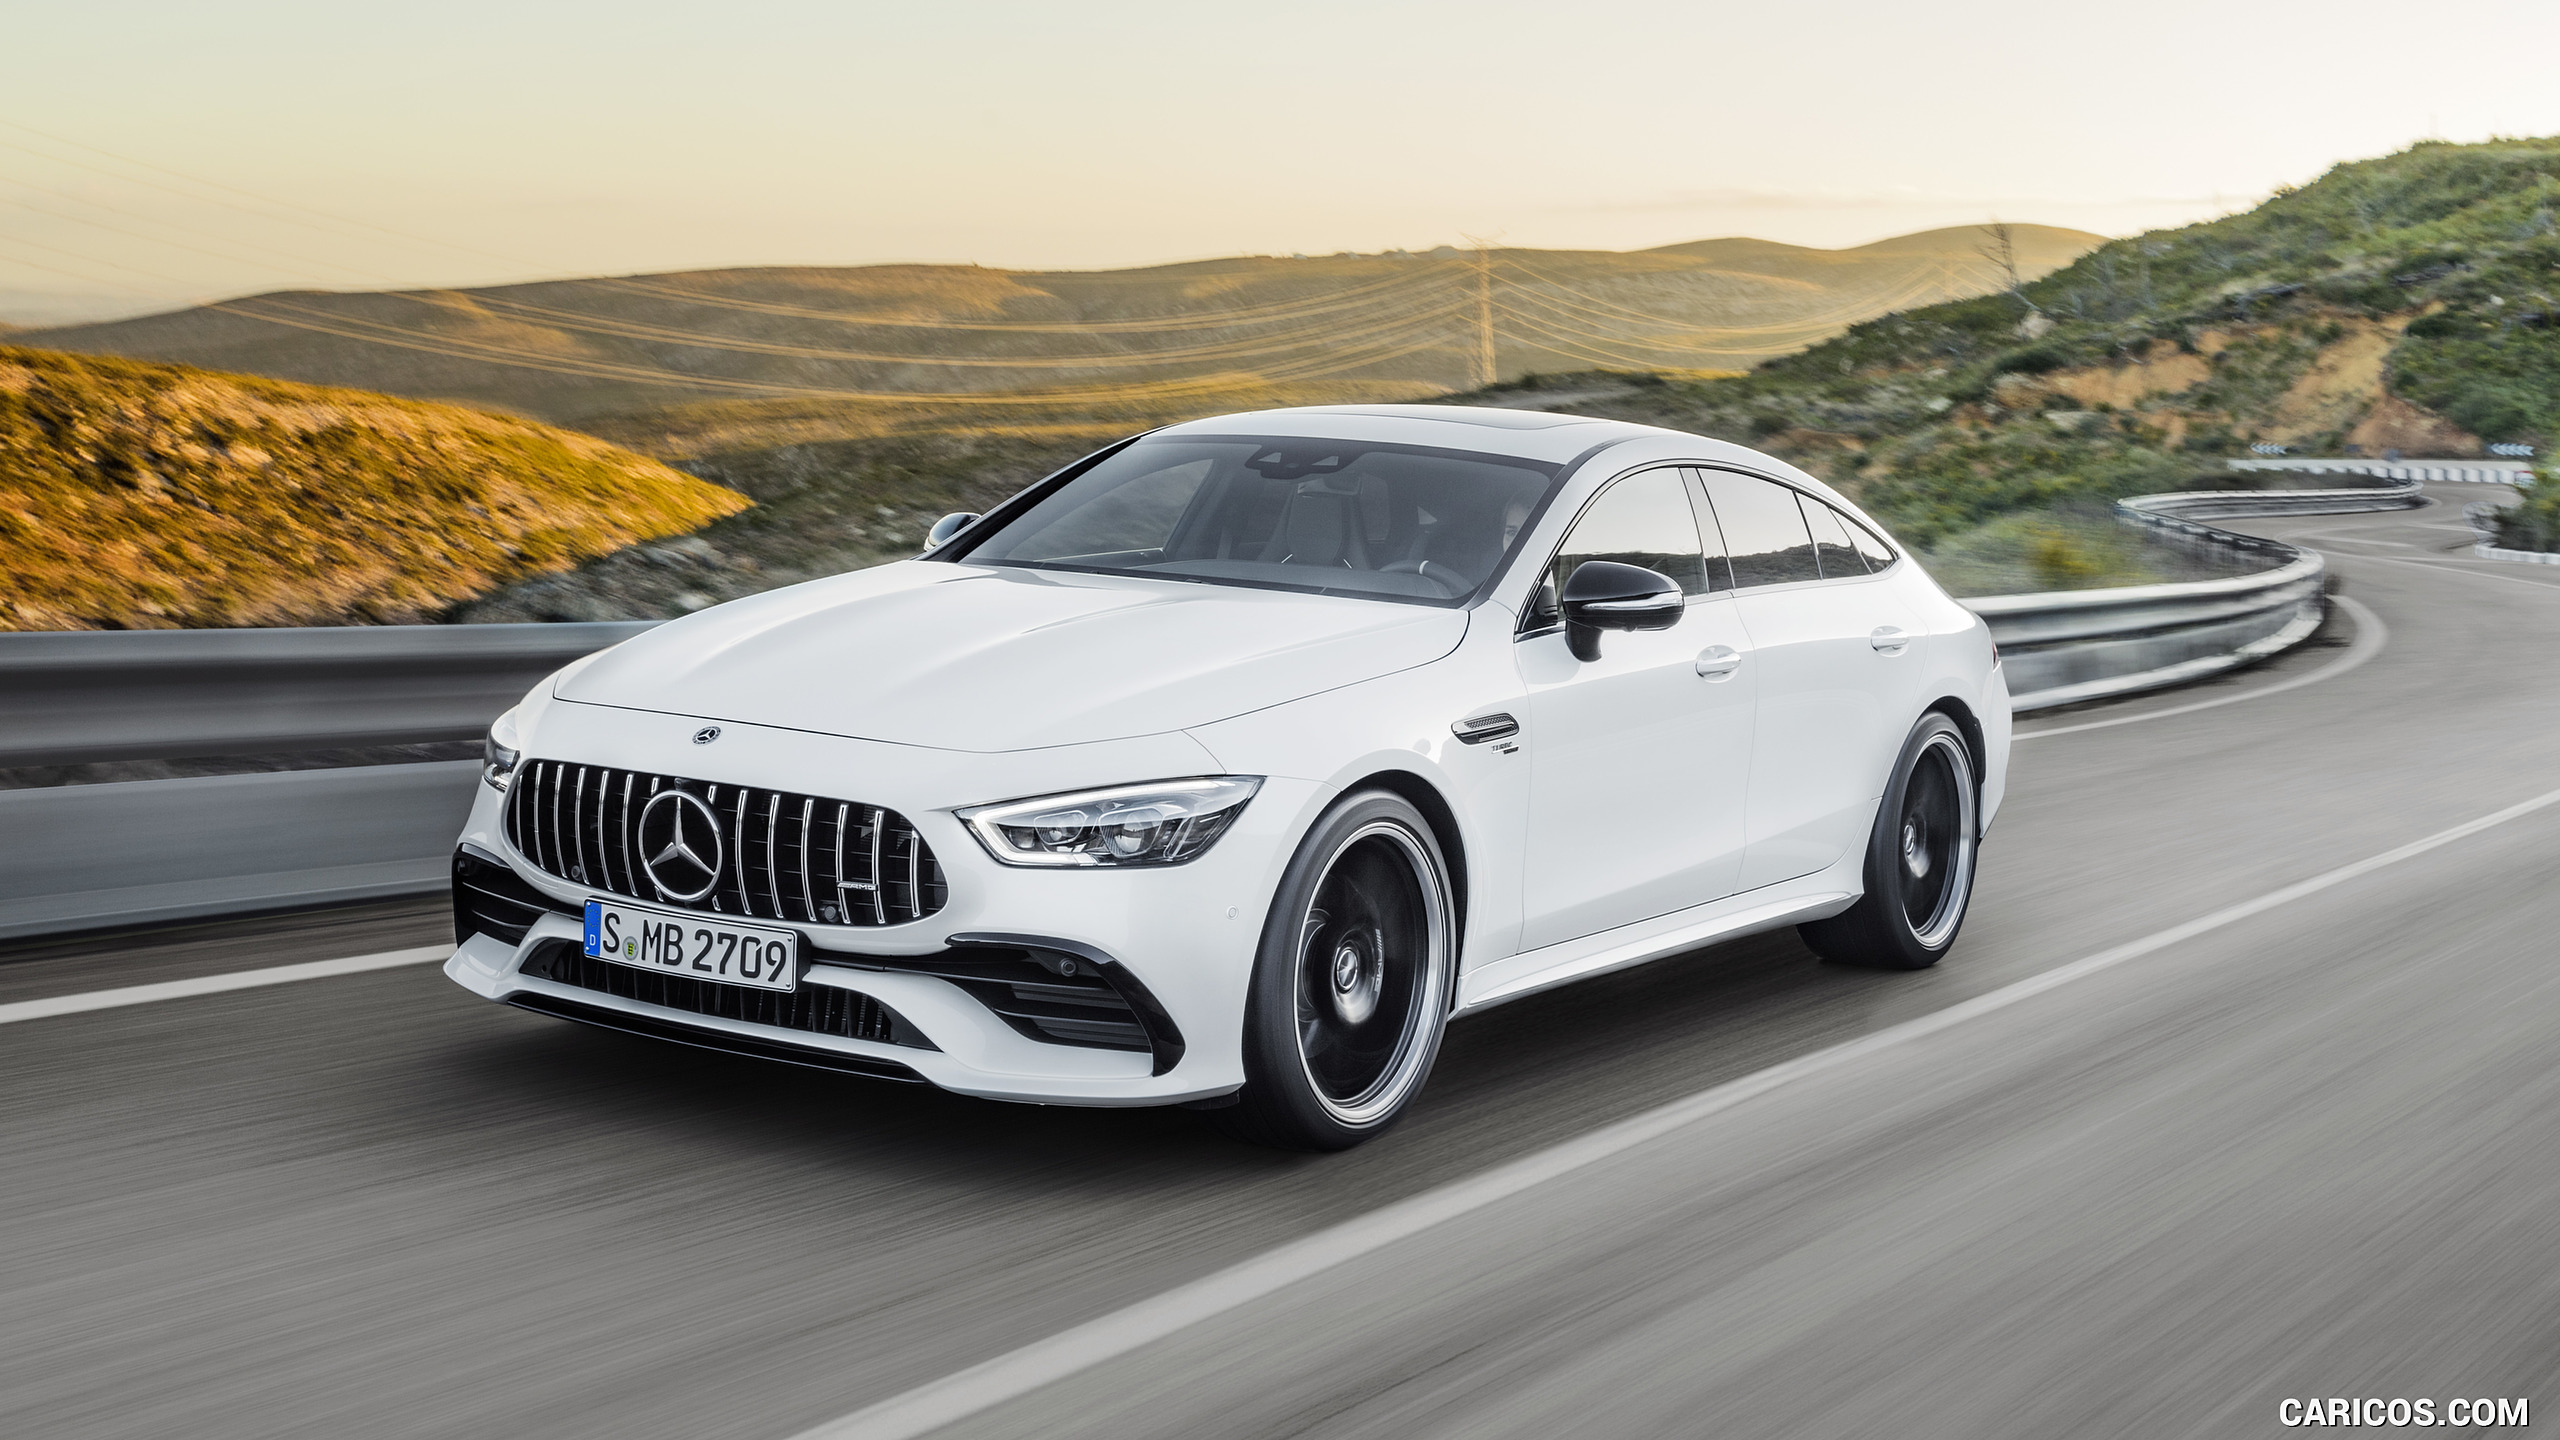 2019 Mercedes AMG GT 53 4MATIC 4 Door Coupe Color Designo 2560x1440